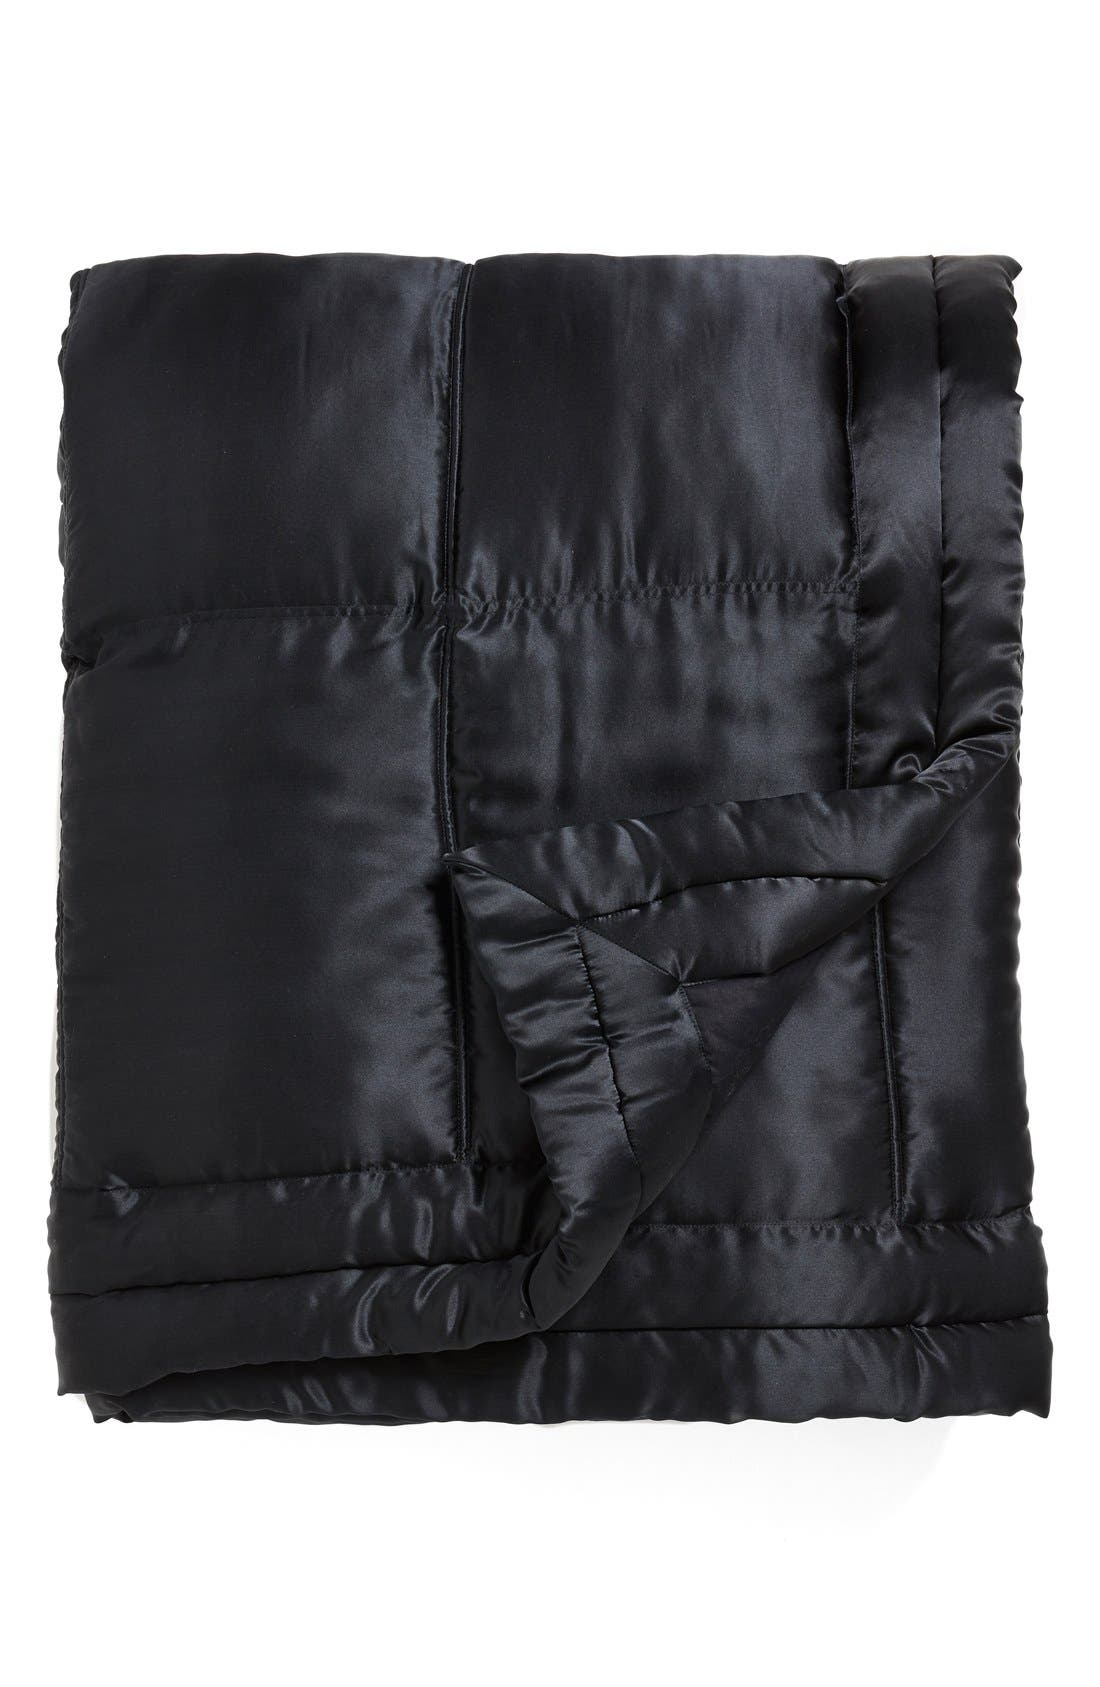 Donna Karan Collection 'Impression' Silk Charmeuse Quilt